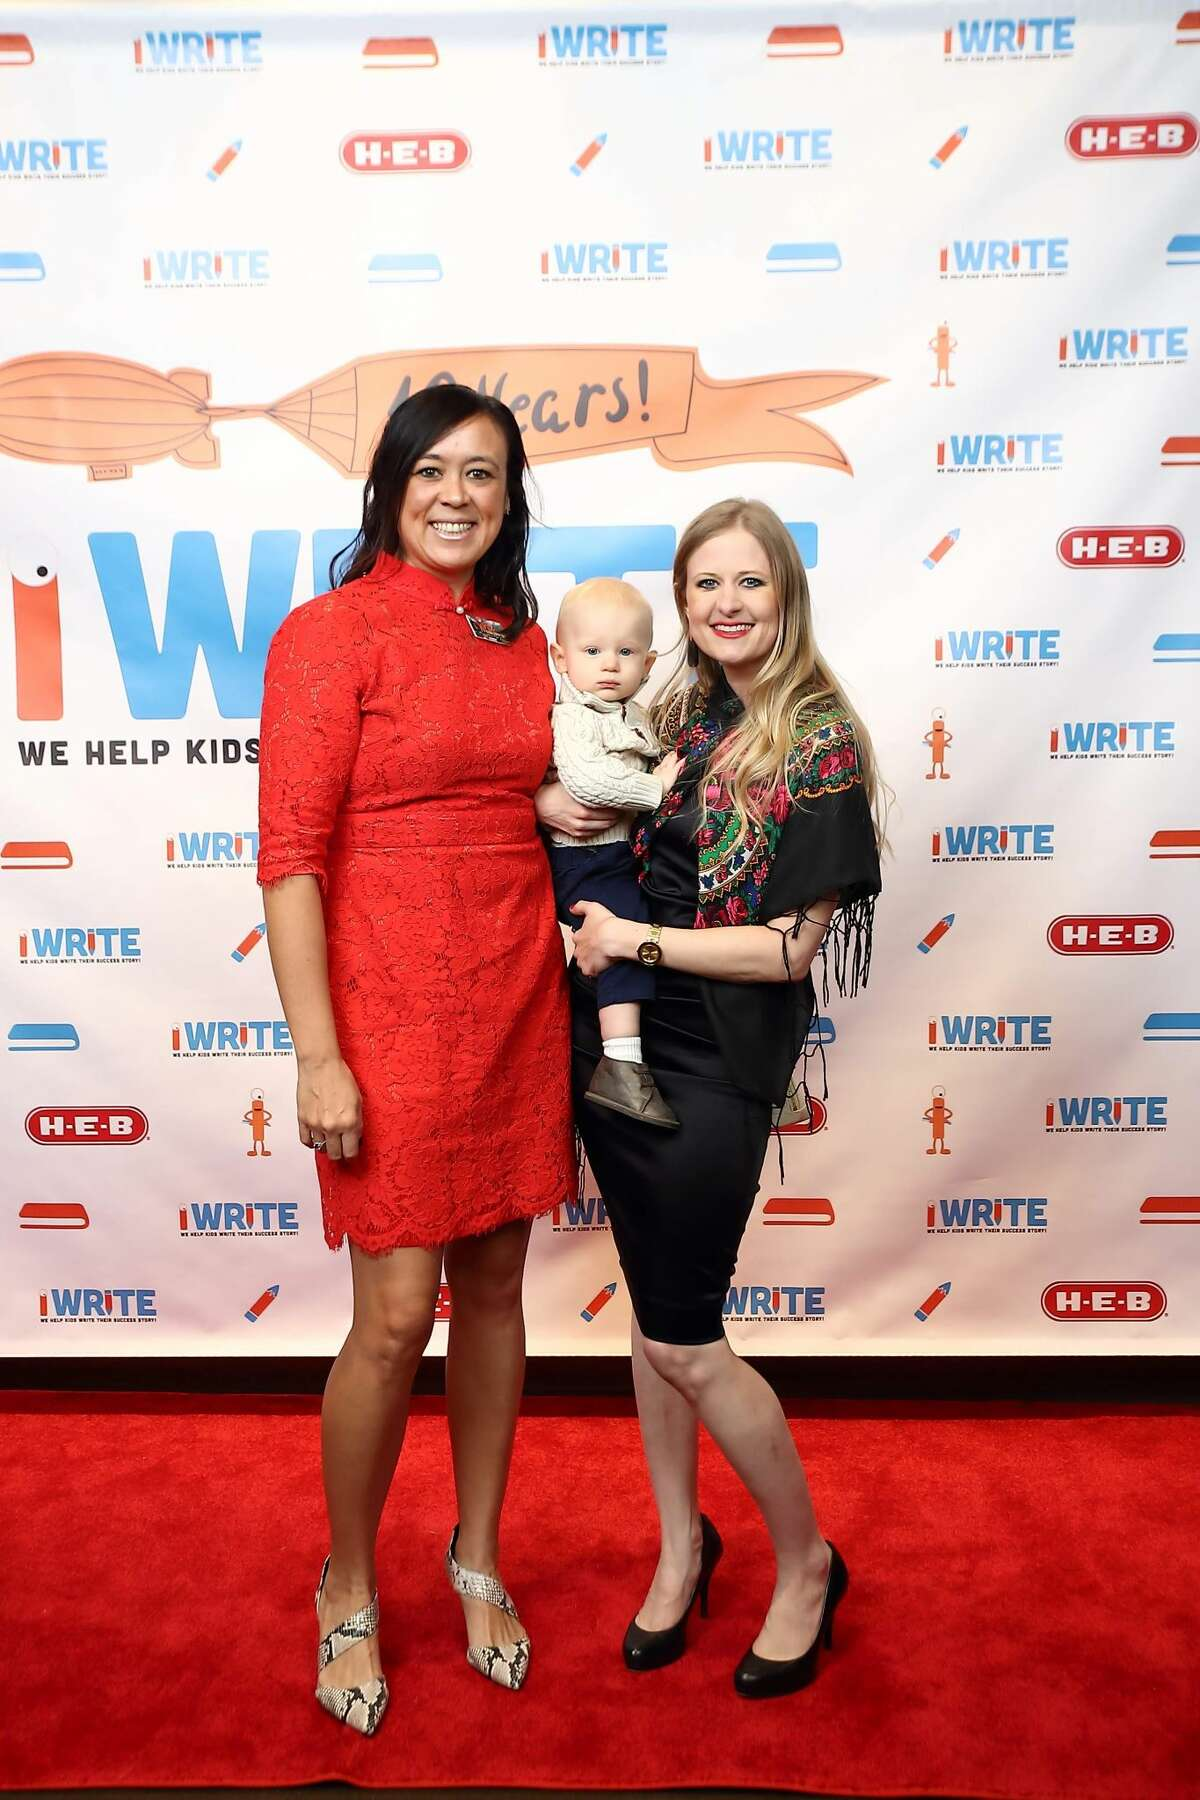 Josephine Firat, Melissa Williams and son at the 10th annual iWrite Literacy Organization luncheon and book signing